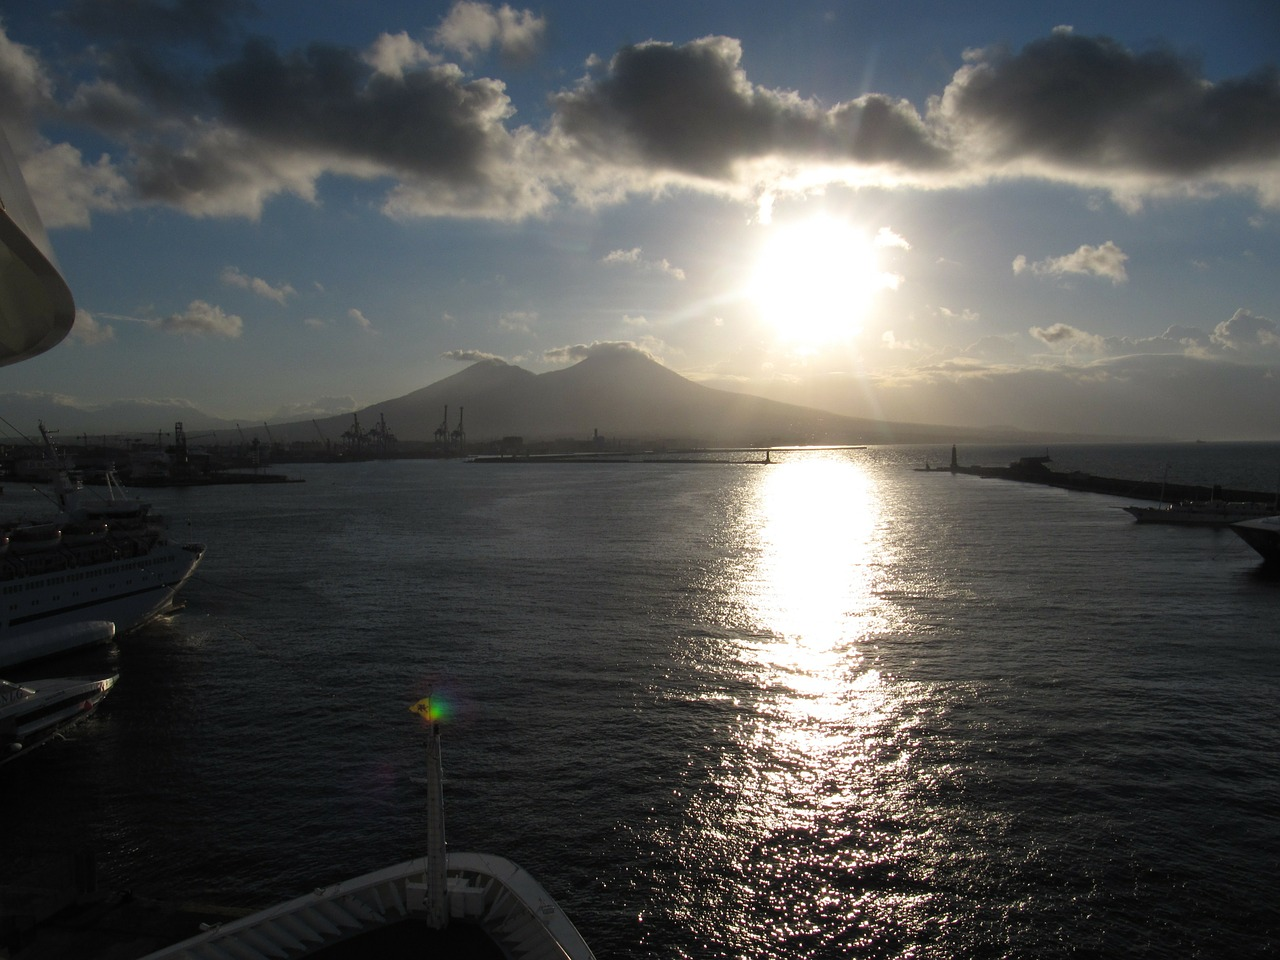 vesuvius,water,sun,view of the ship,free pictures, free photos, free images, royalty free, free illustrations, public domain